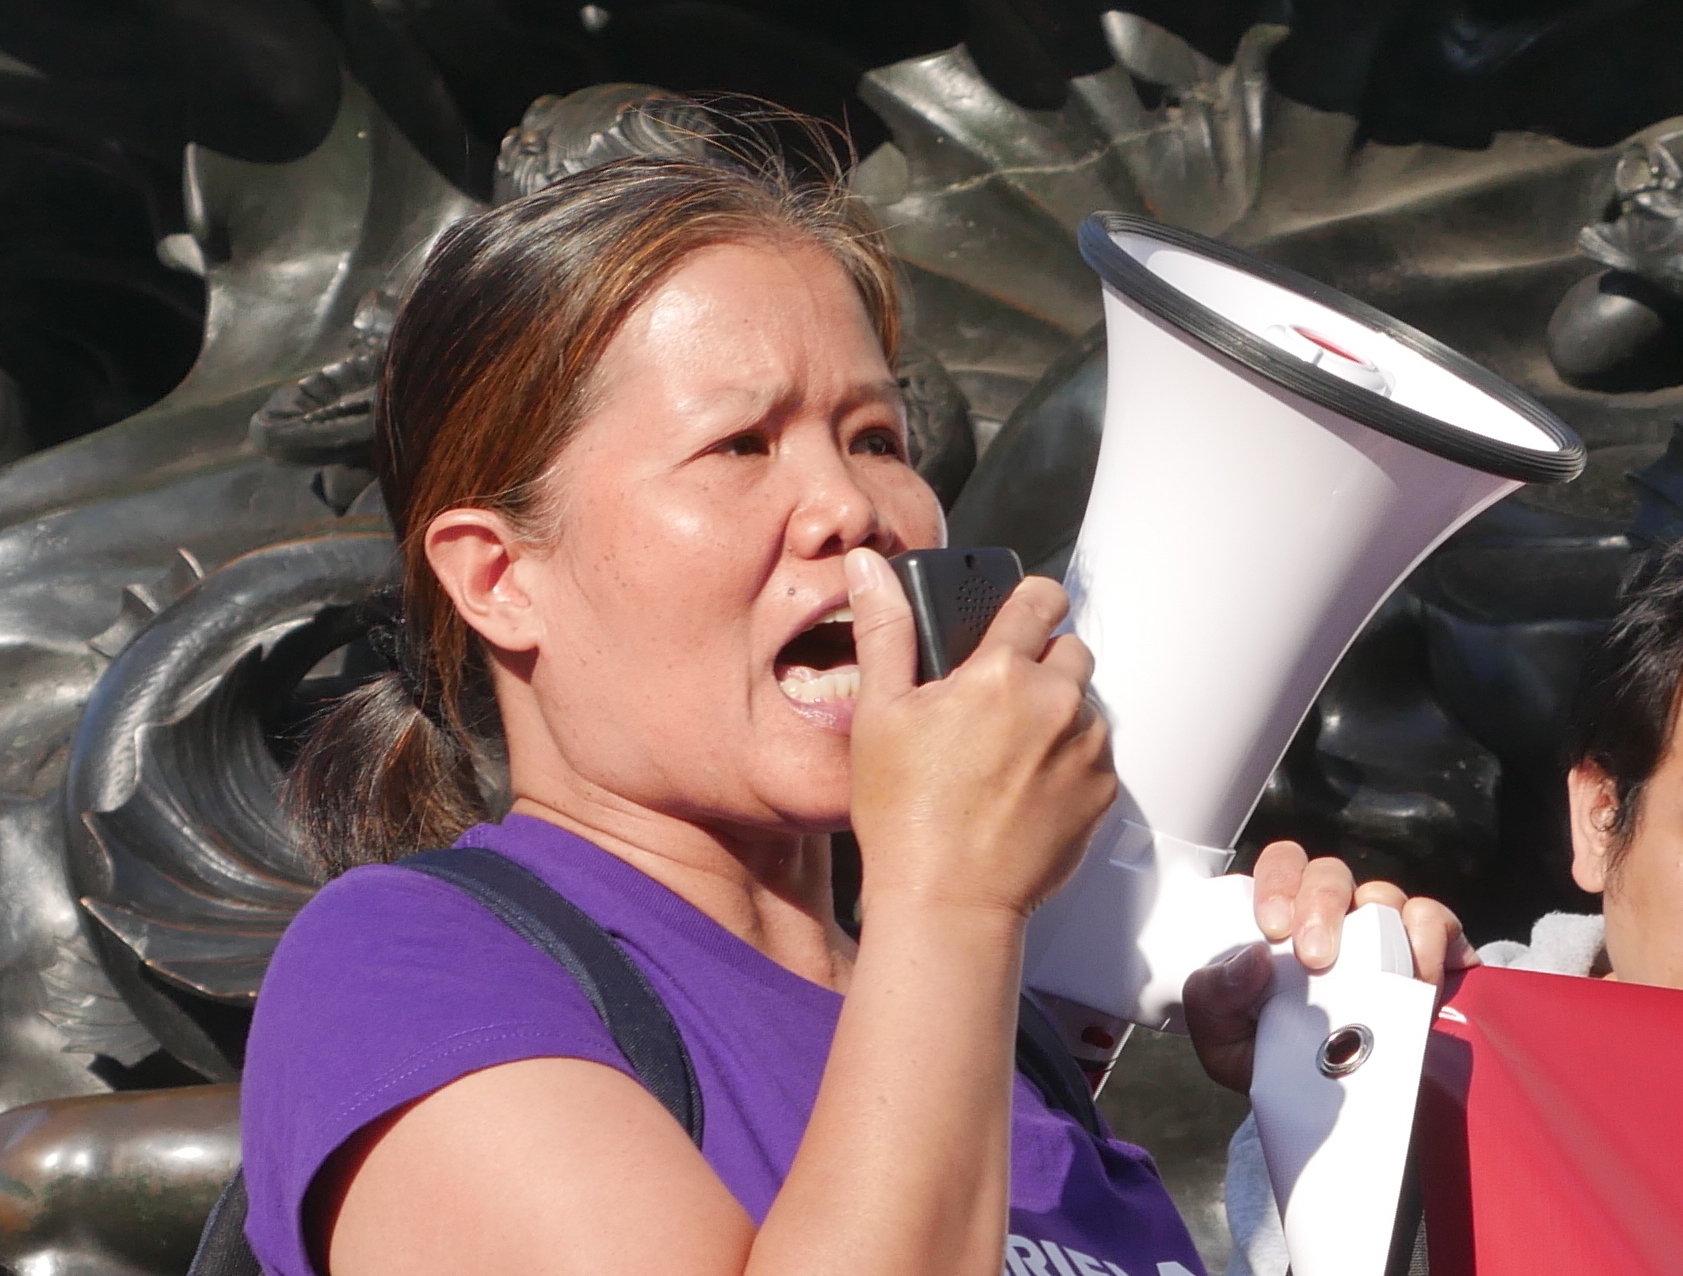 A Filipina migrant domestic worker is shouting passionately into a megaphone at a protest